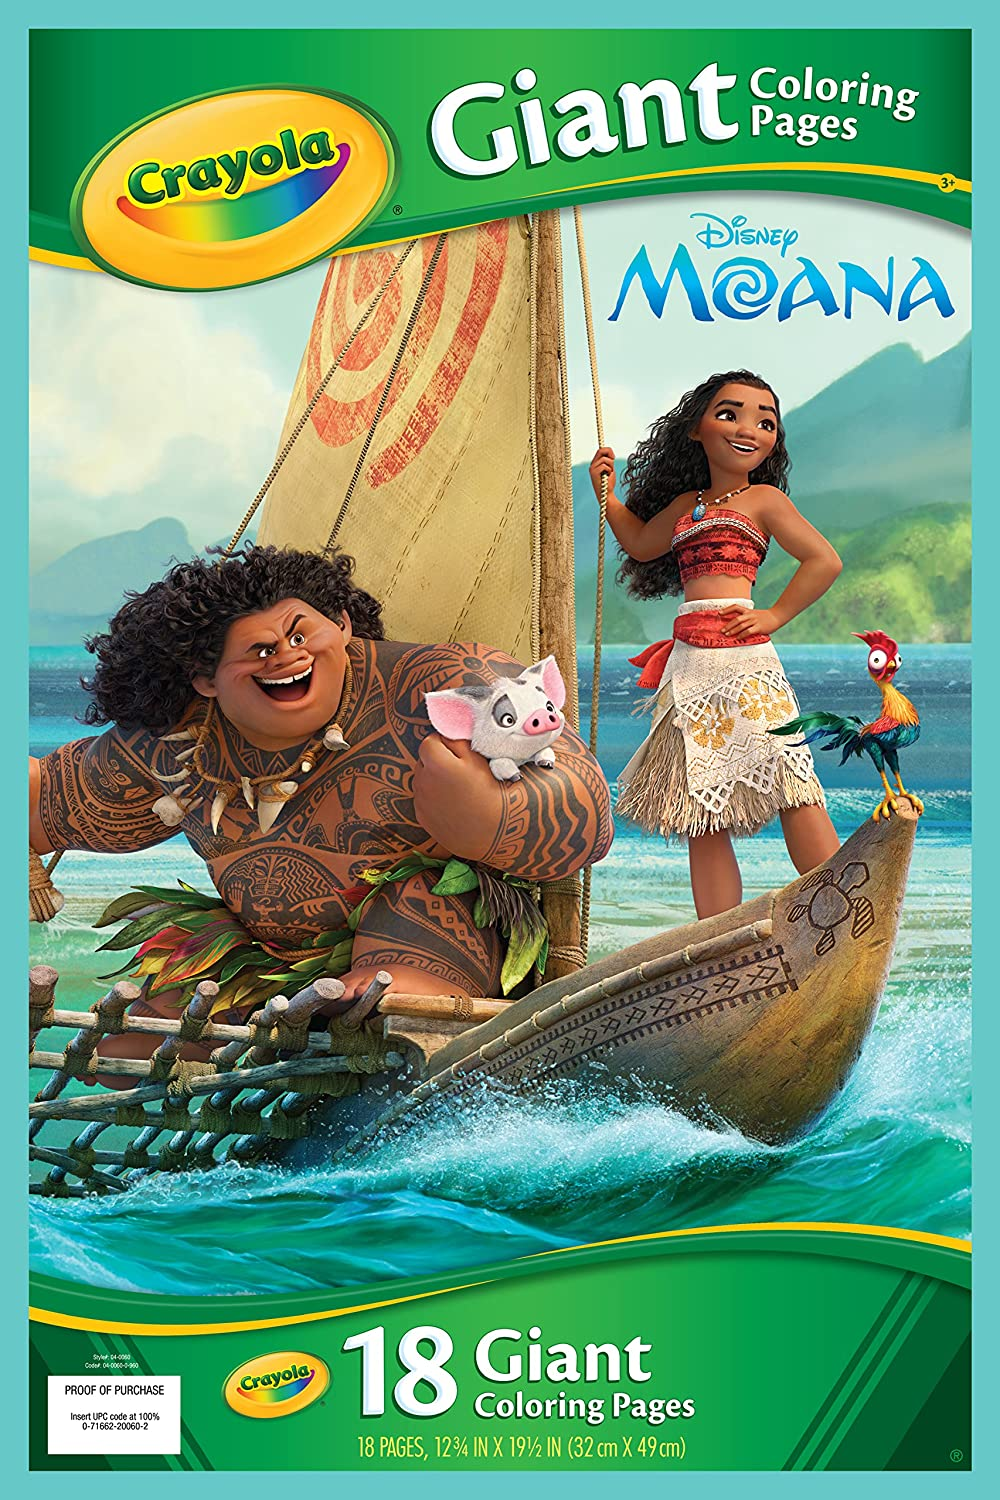 Shopkins giant coloring book - Crayola 04 0060 0 000 Moana Giant Colouring Pages